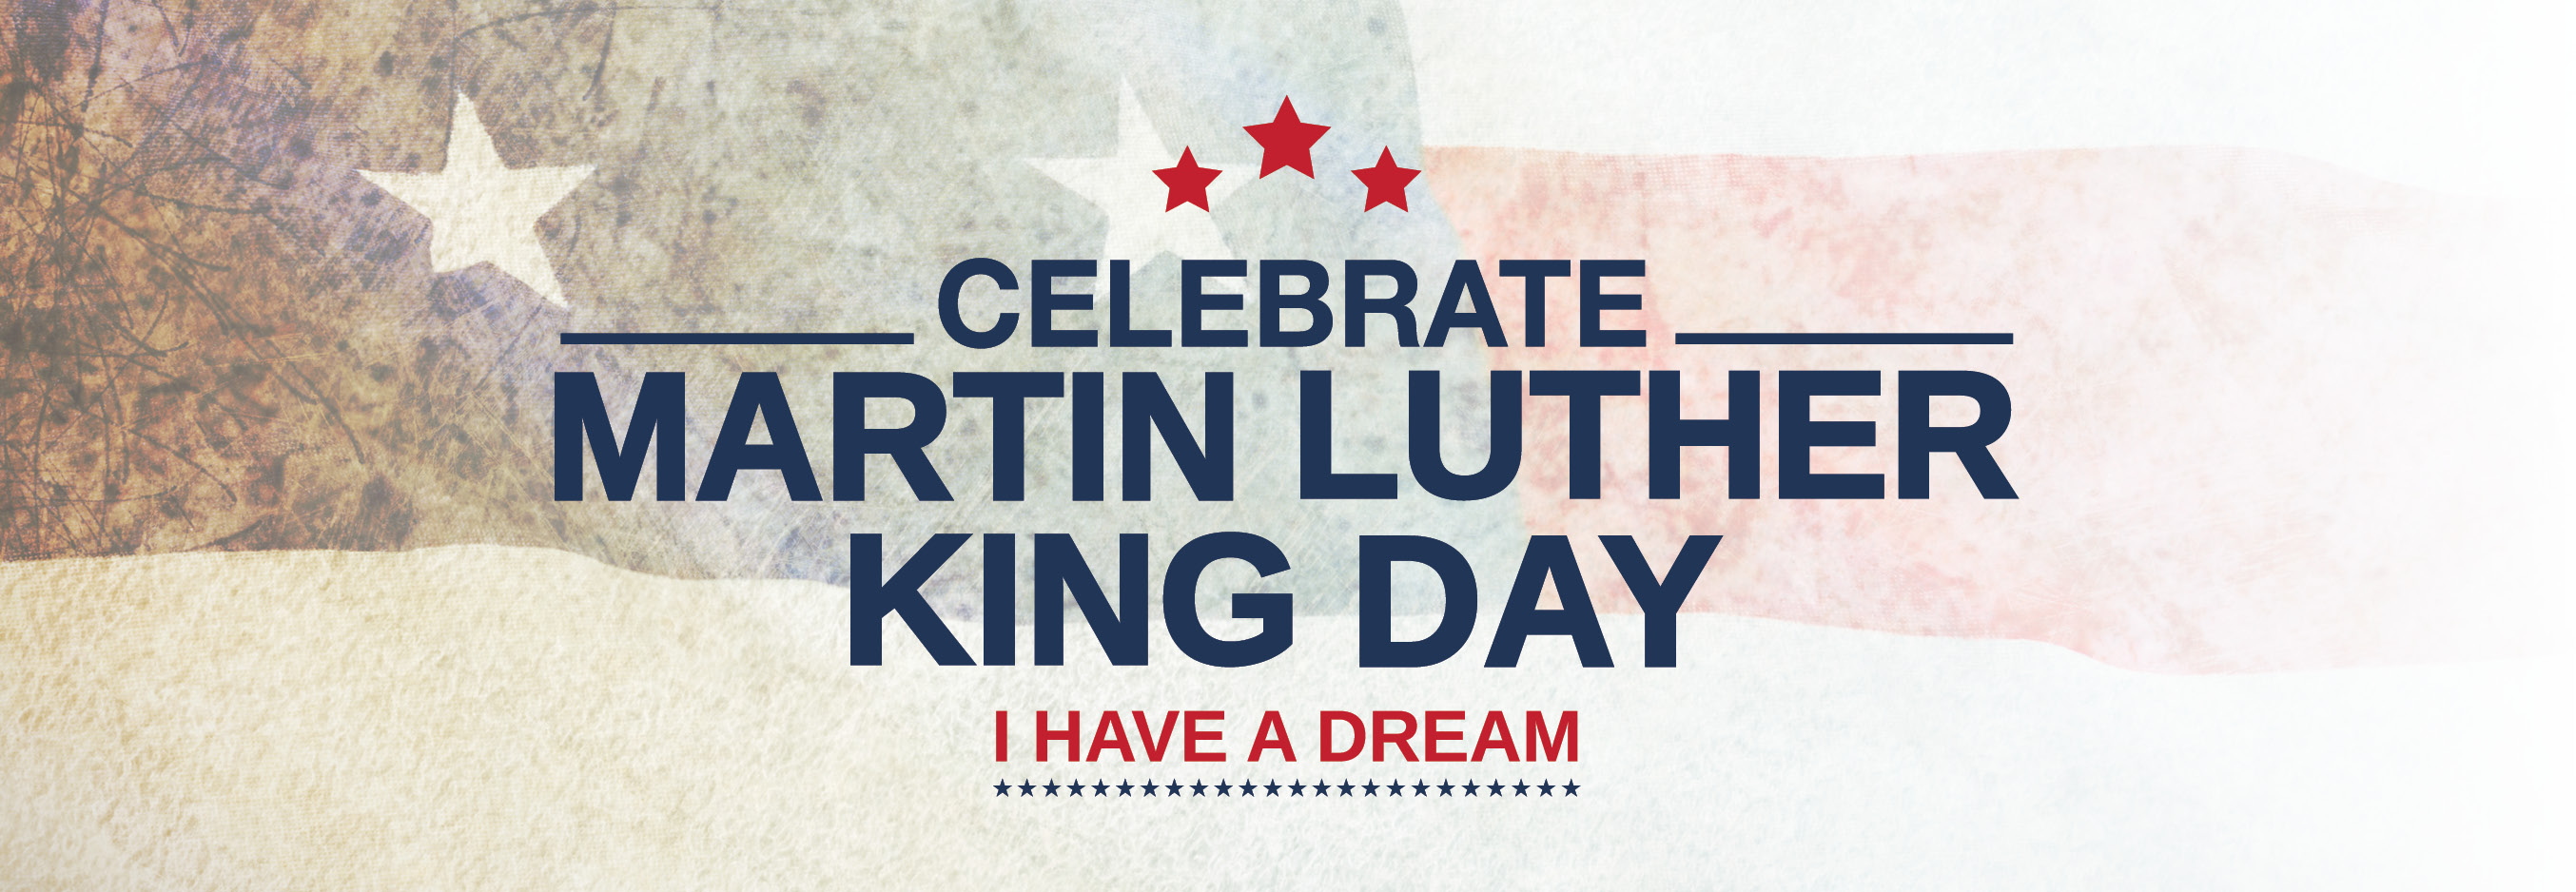 Martin Luther King Jr Day Celebration Book Collection